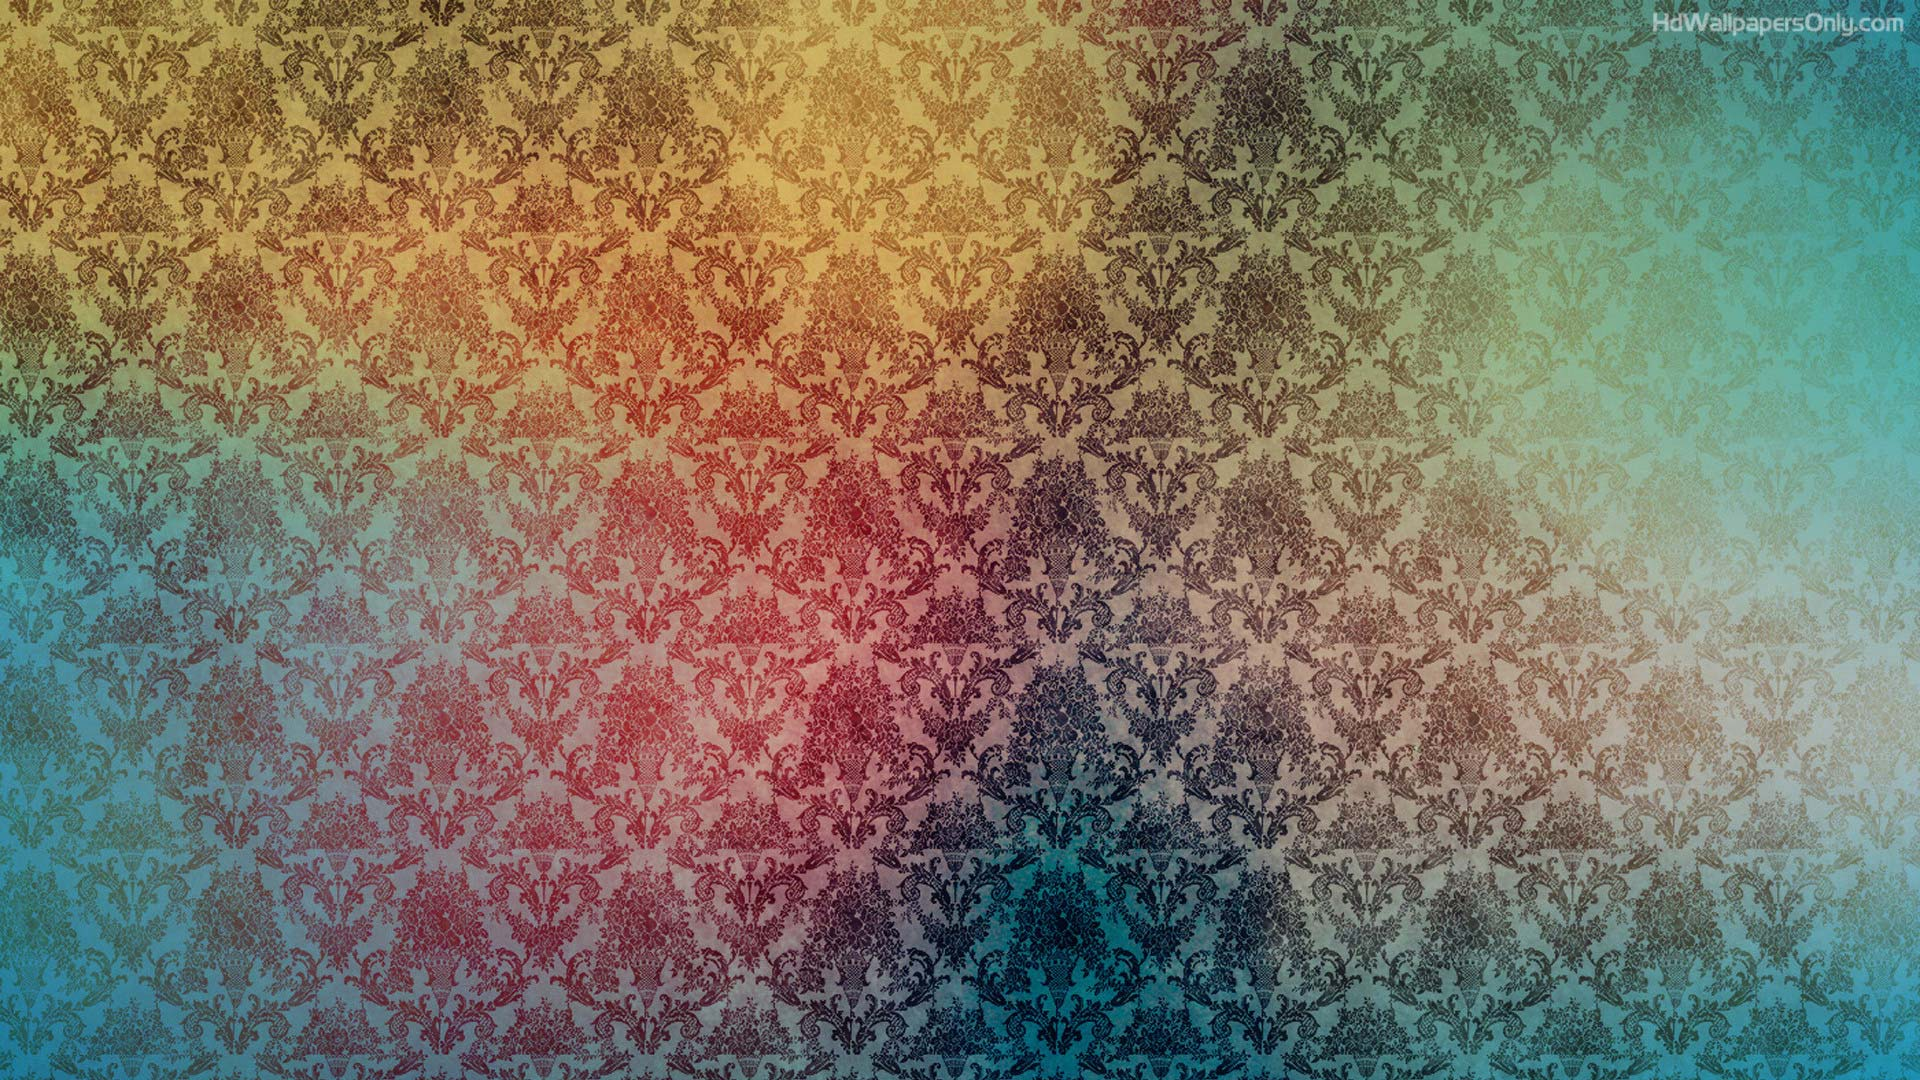 Vintage Wallpapers & Vintage Backgrounds